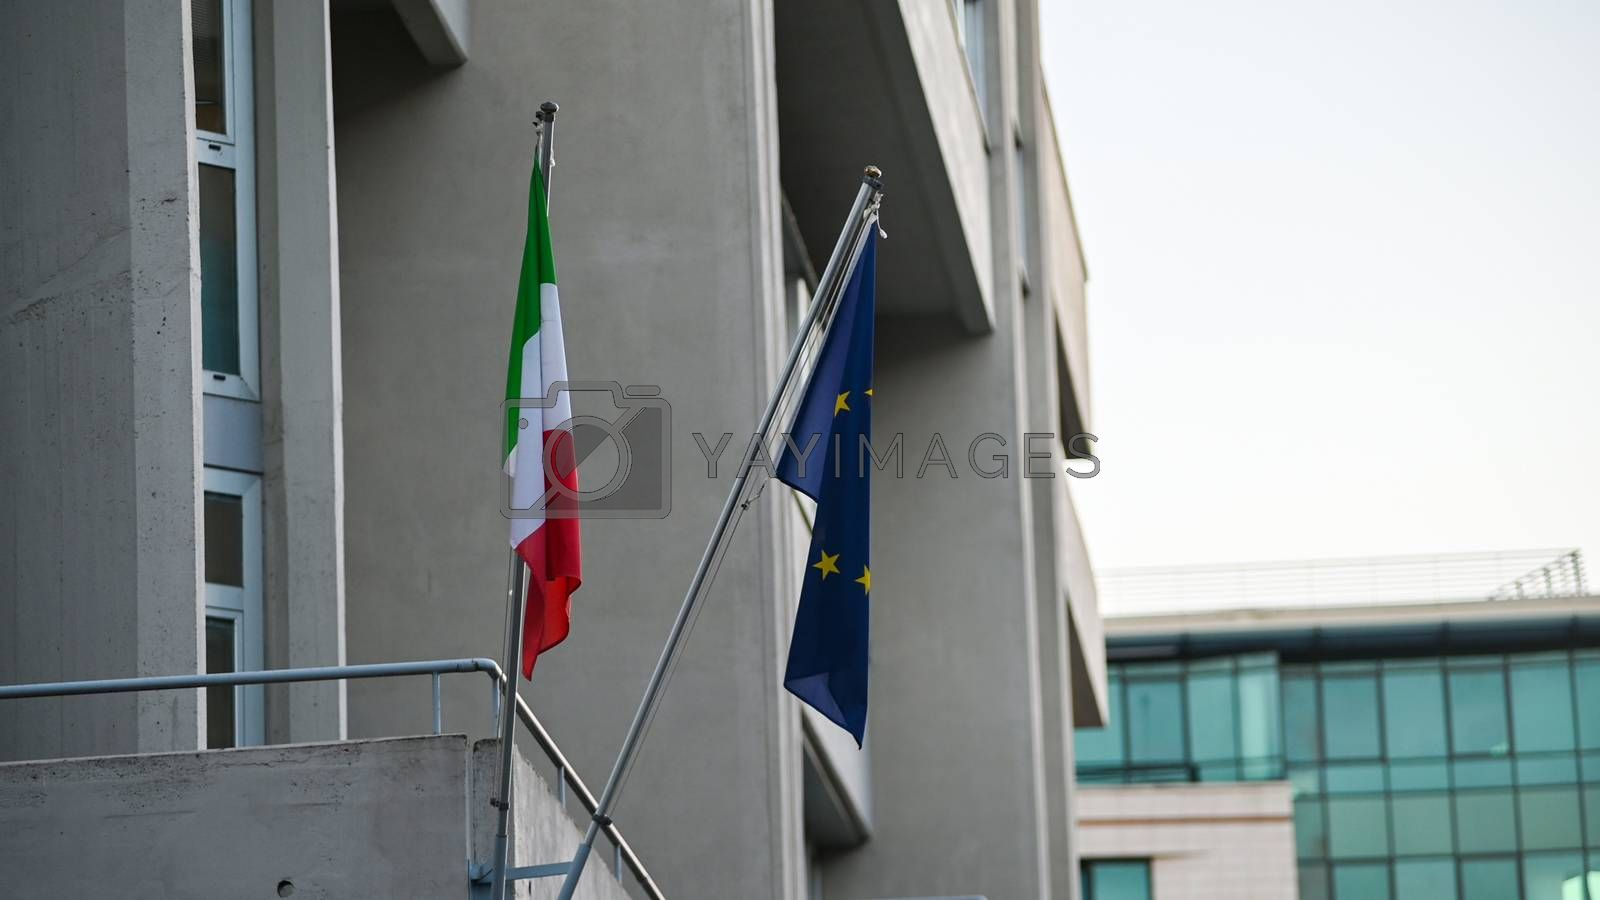 terni,italy november 17 2020:flags of italy and european communion at the court